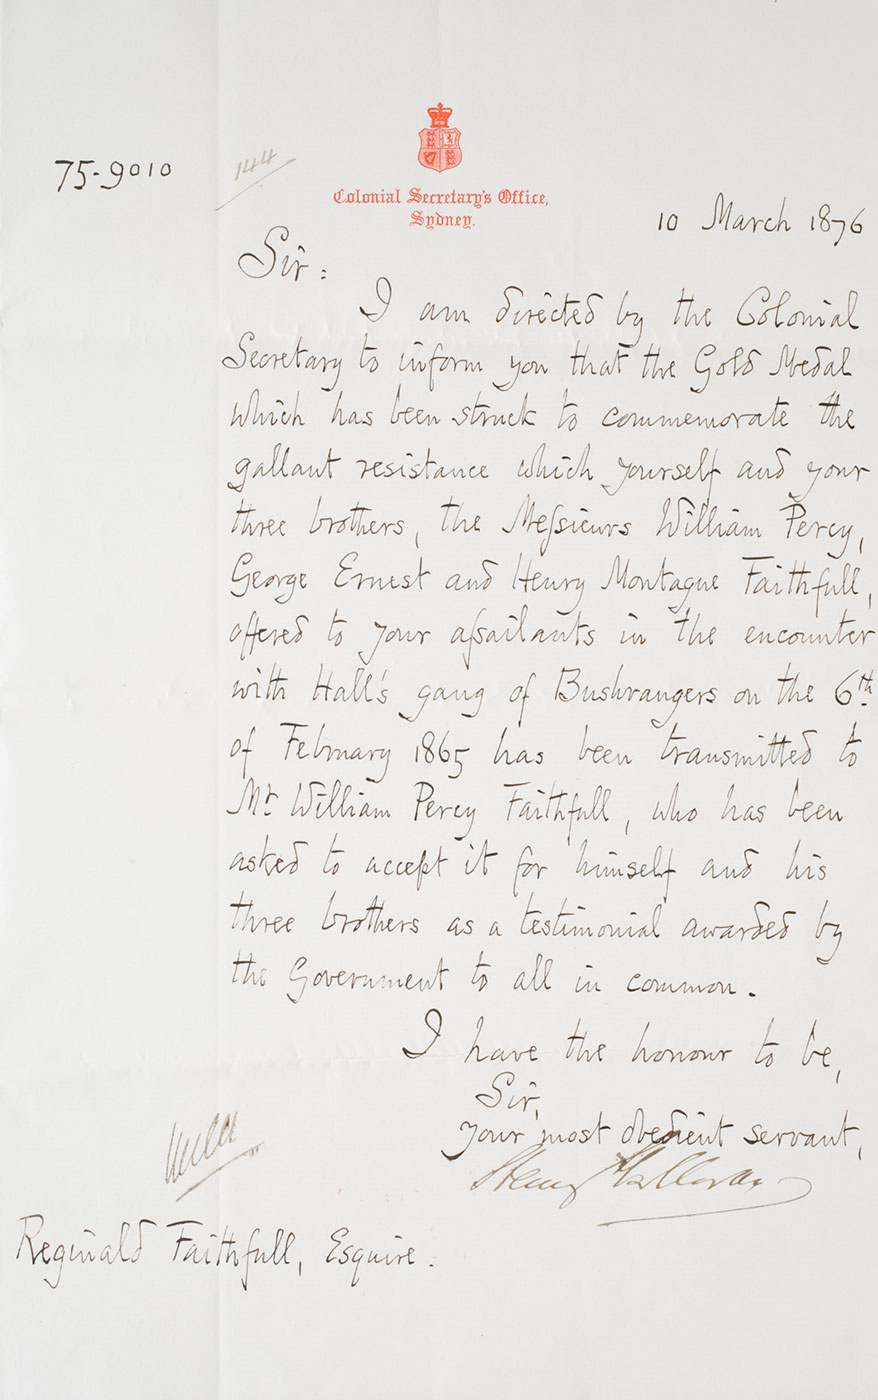 A handwritten letter from the Colonial Secretary's Office to George Ernest Faithfull, 10 March 1876. - click to view larger image